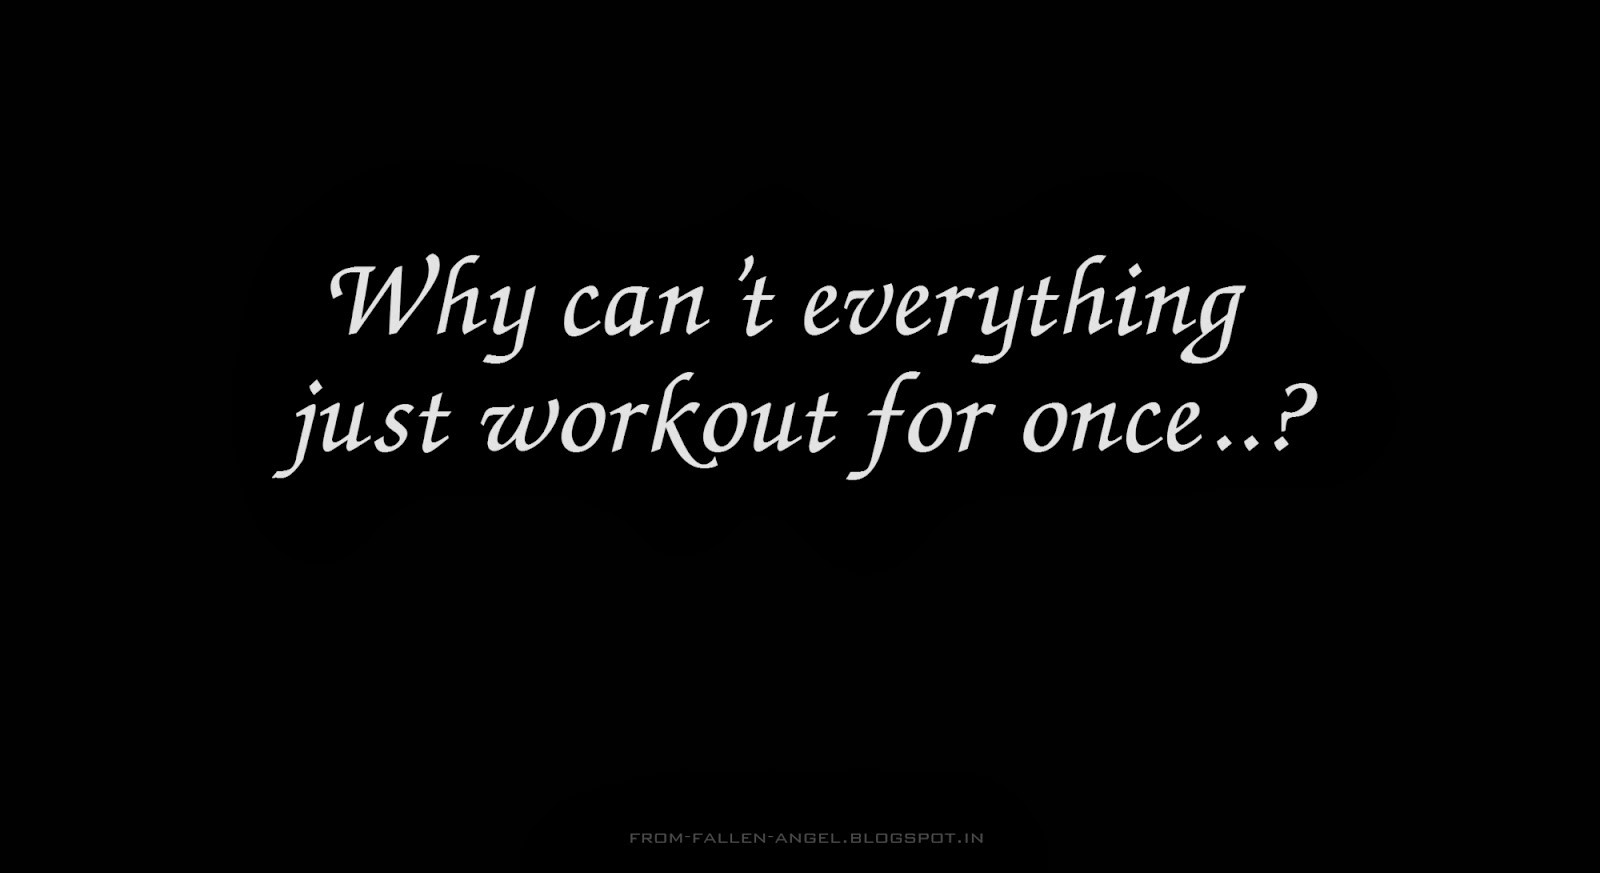 Why can't everything just workout for once..